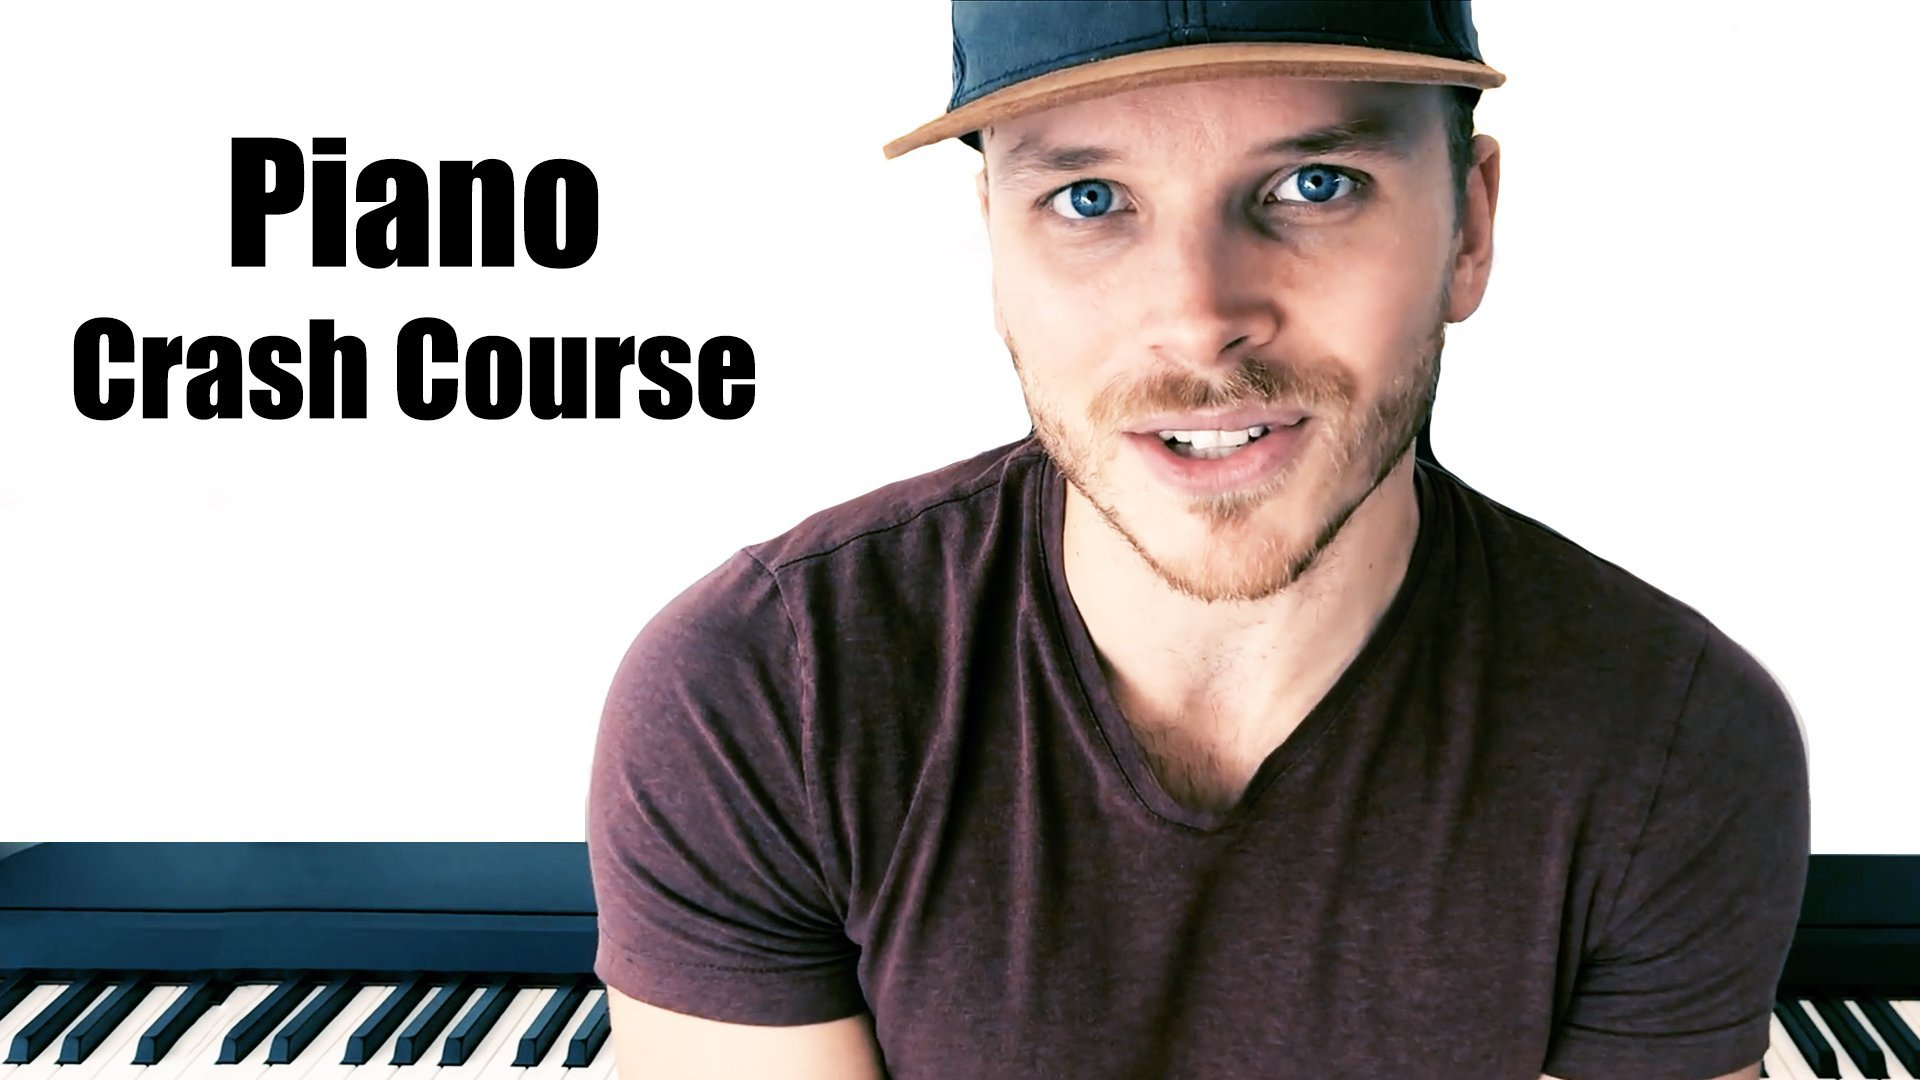 Learn Piano Basics in 50 Minutes!! Piano Crash Course!